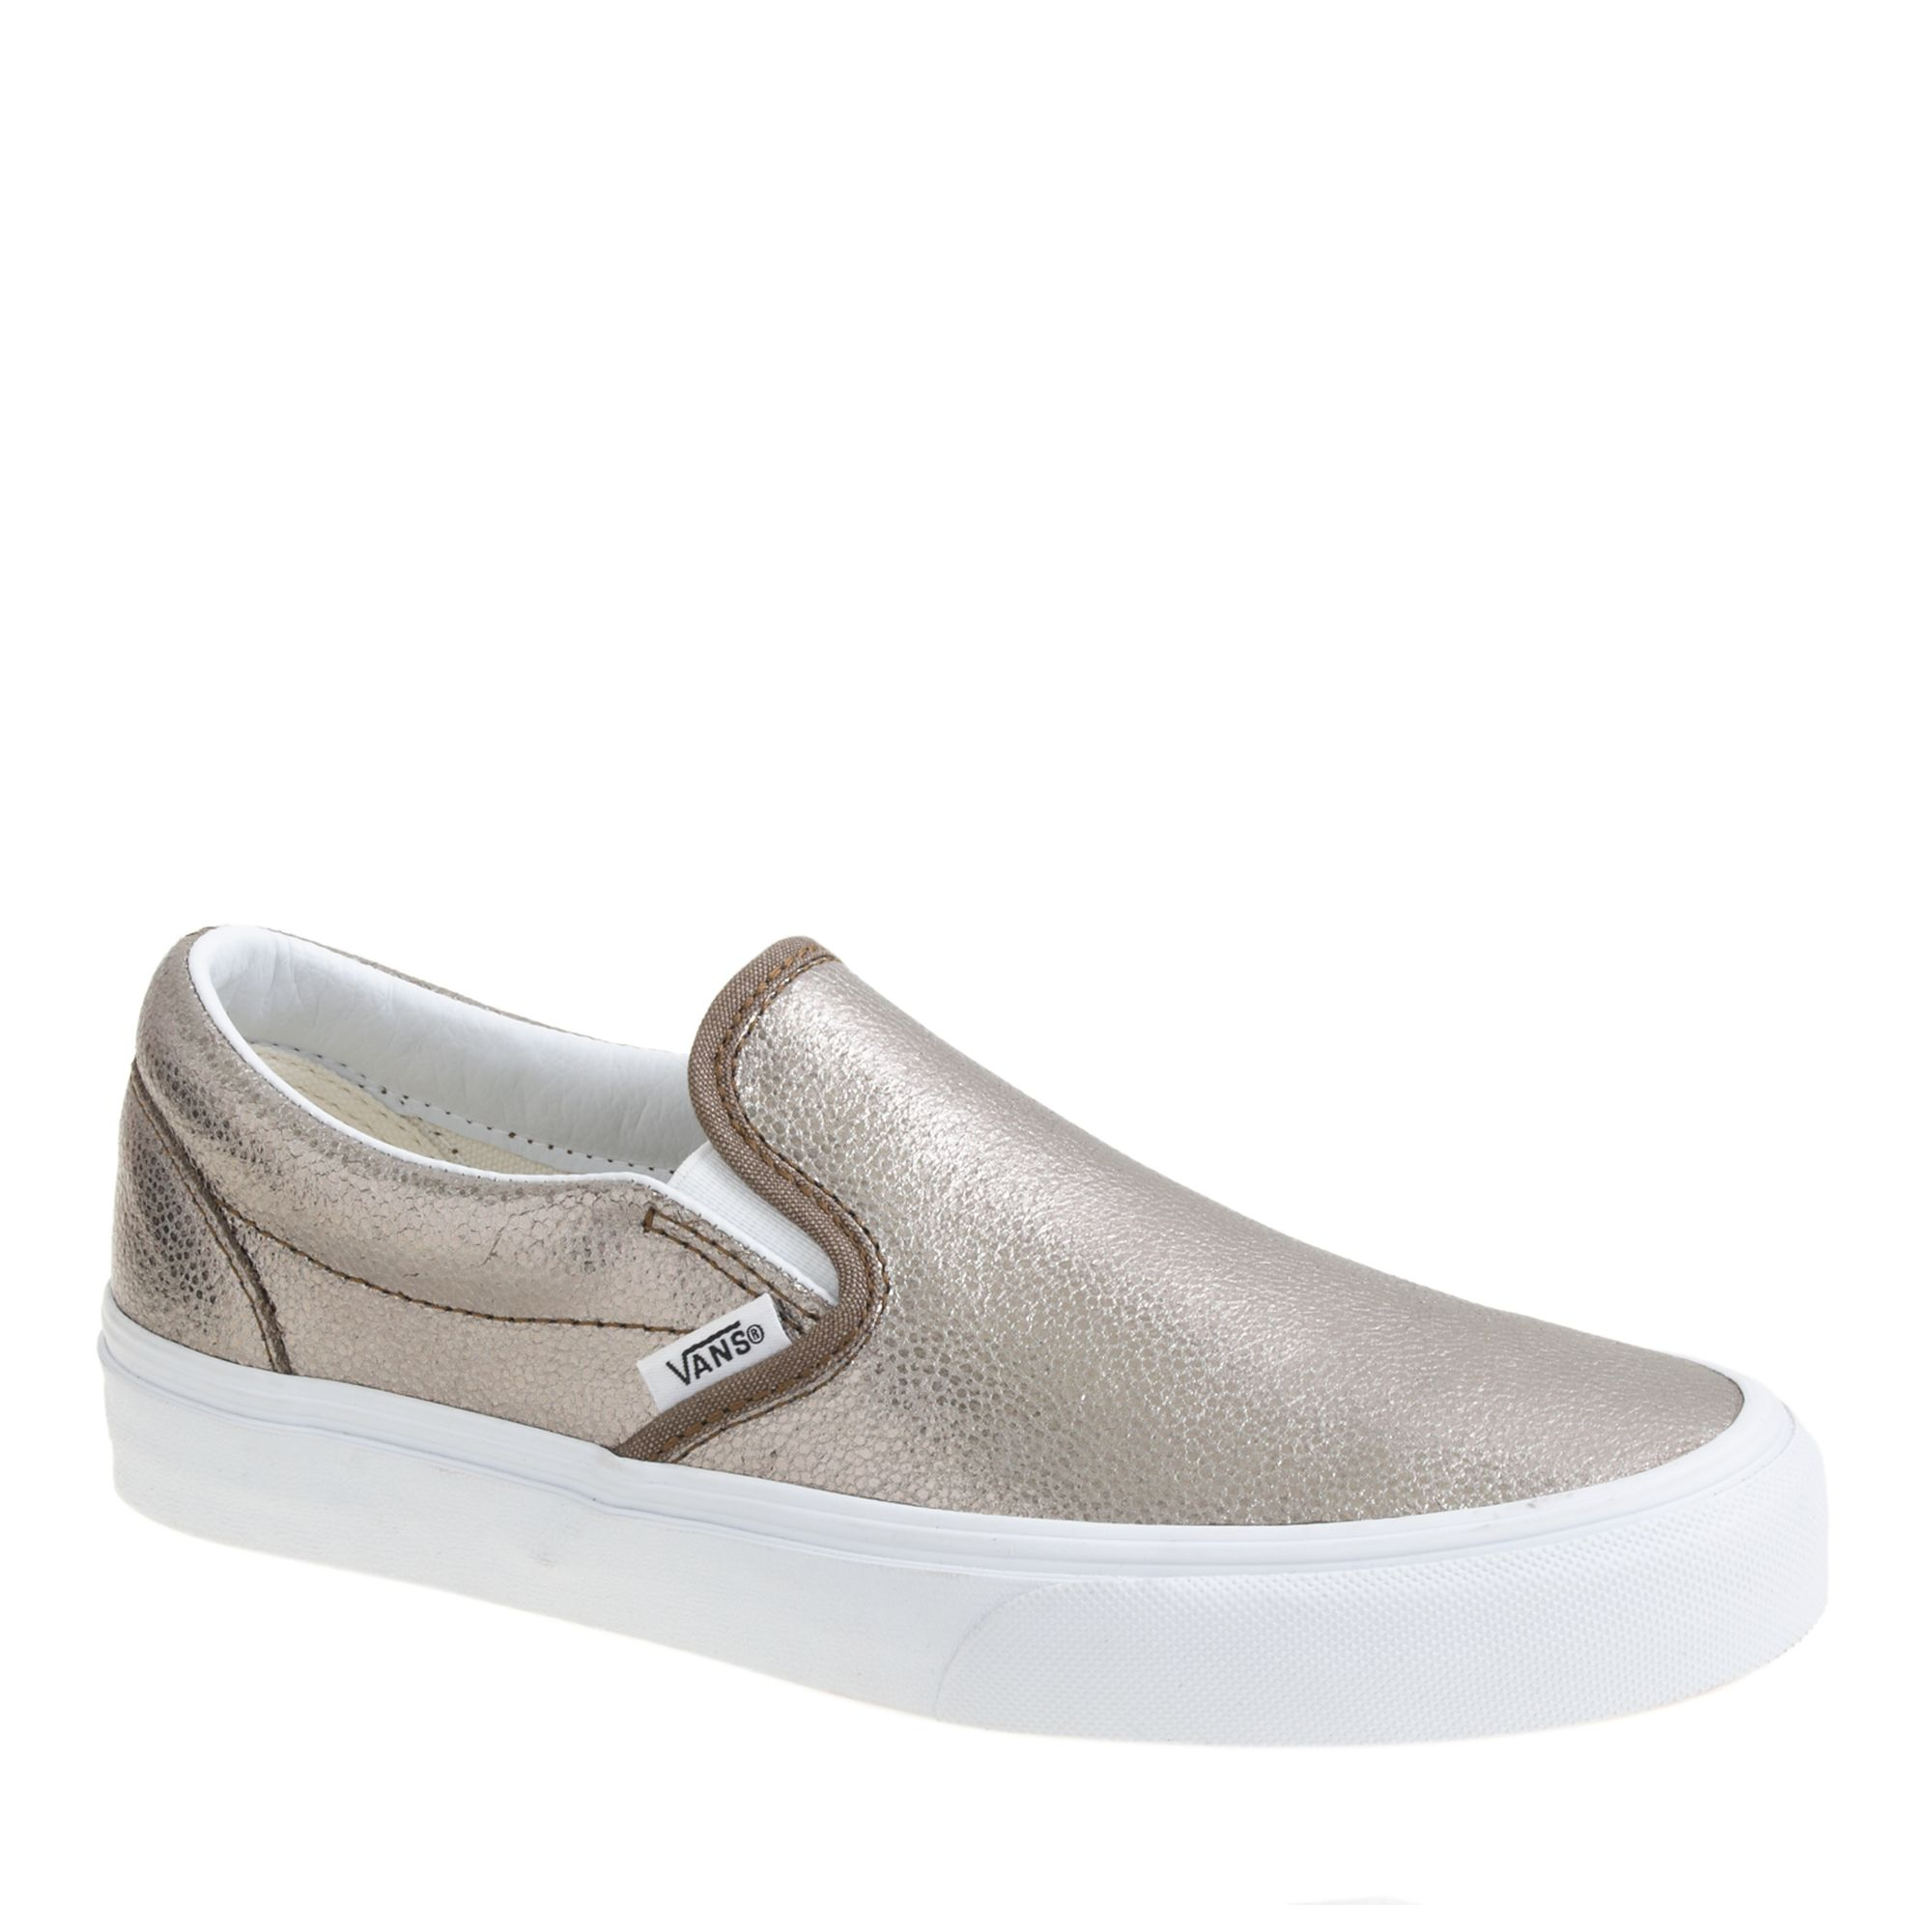 j crew vans leather metallic classic slipon shoes in